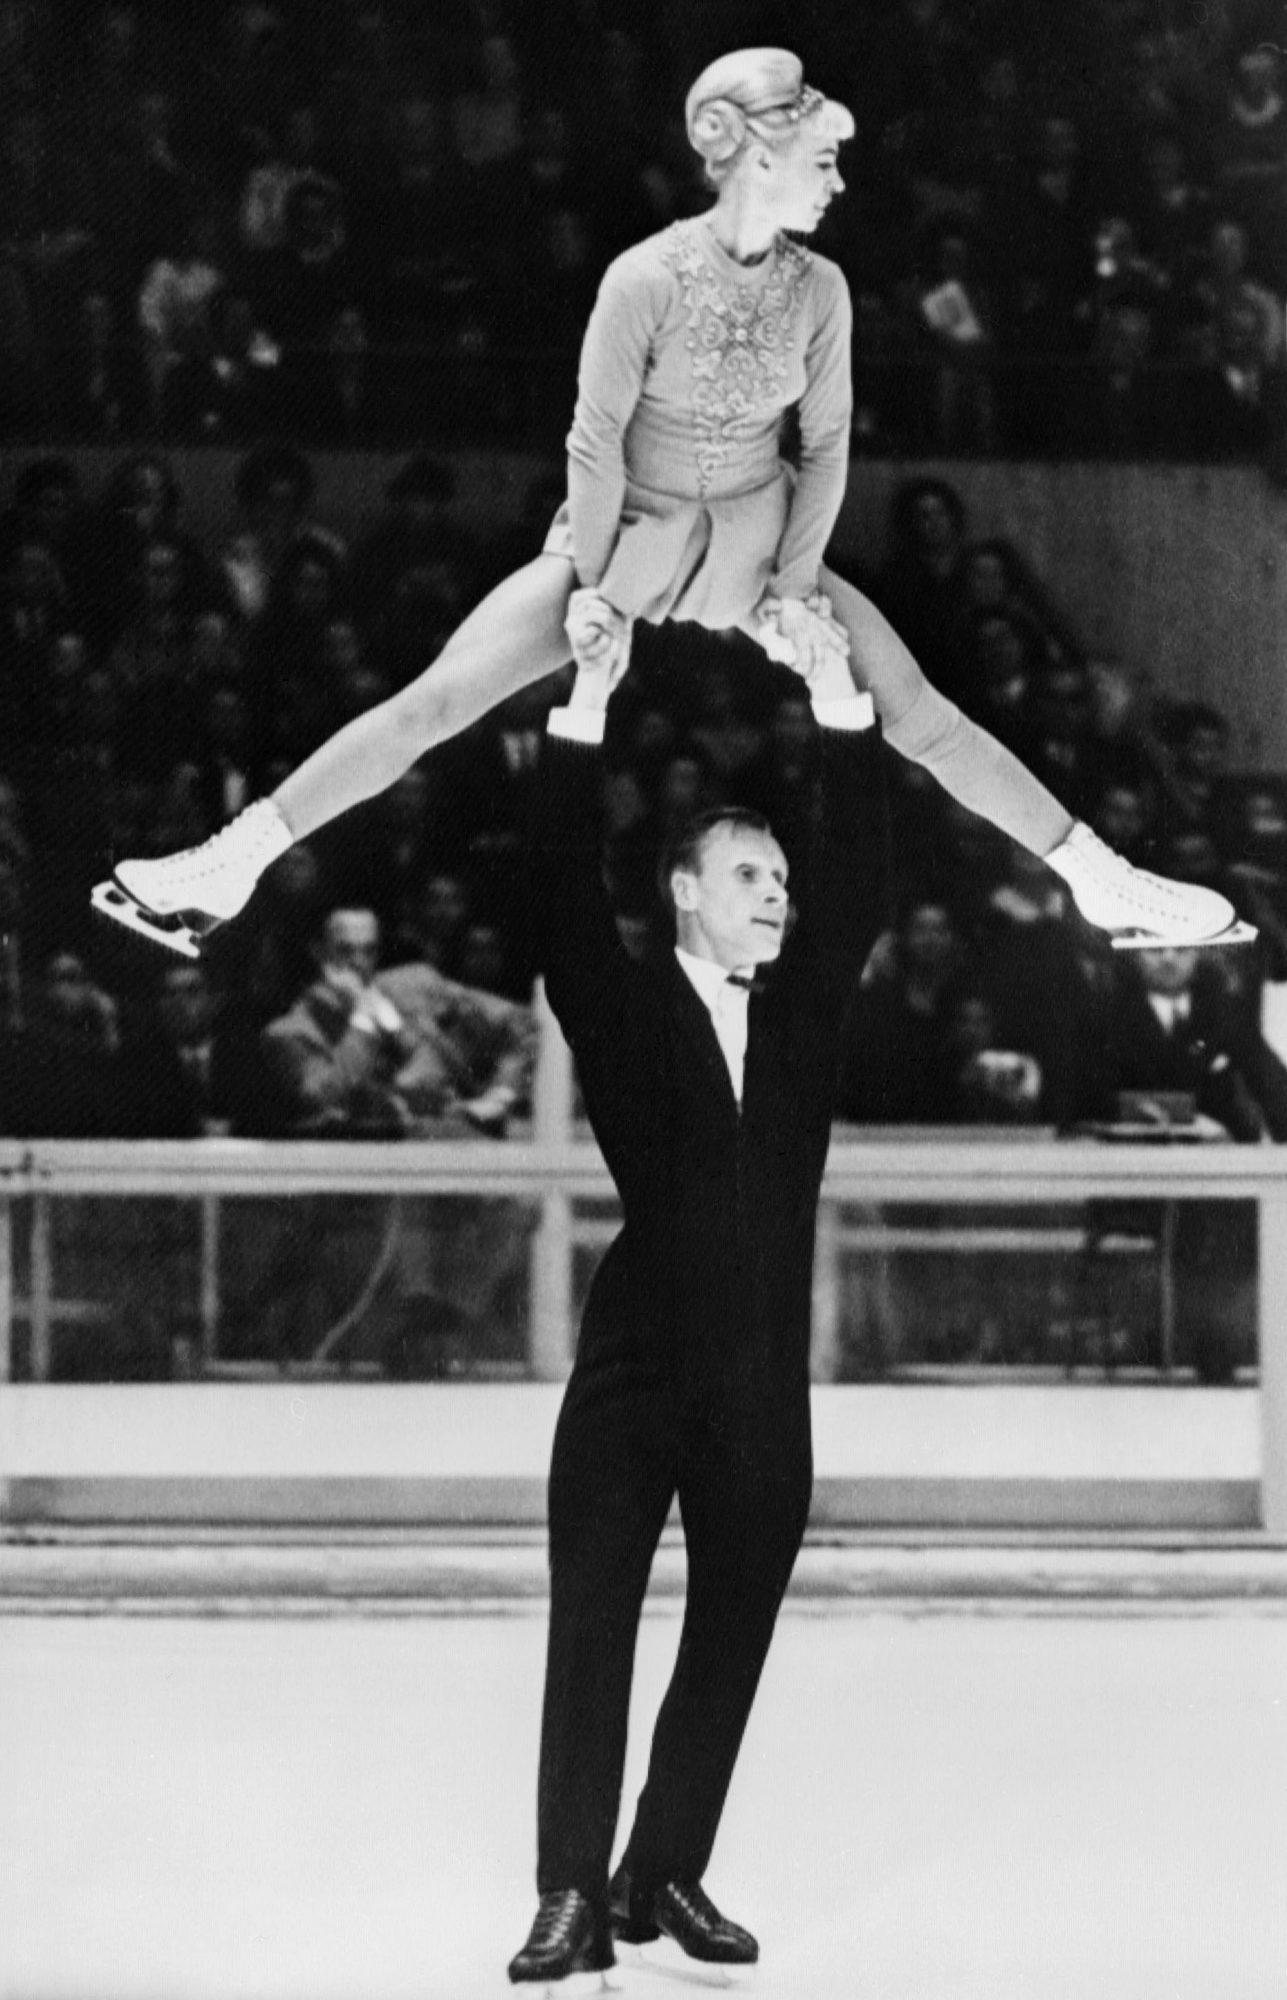 Oleg and Ludmila Protopopov (1968 and 1964 Olympic Champions)